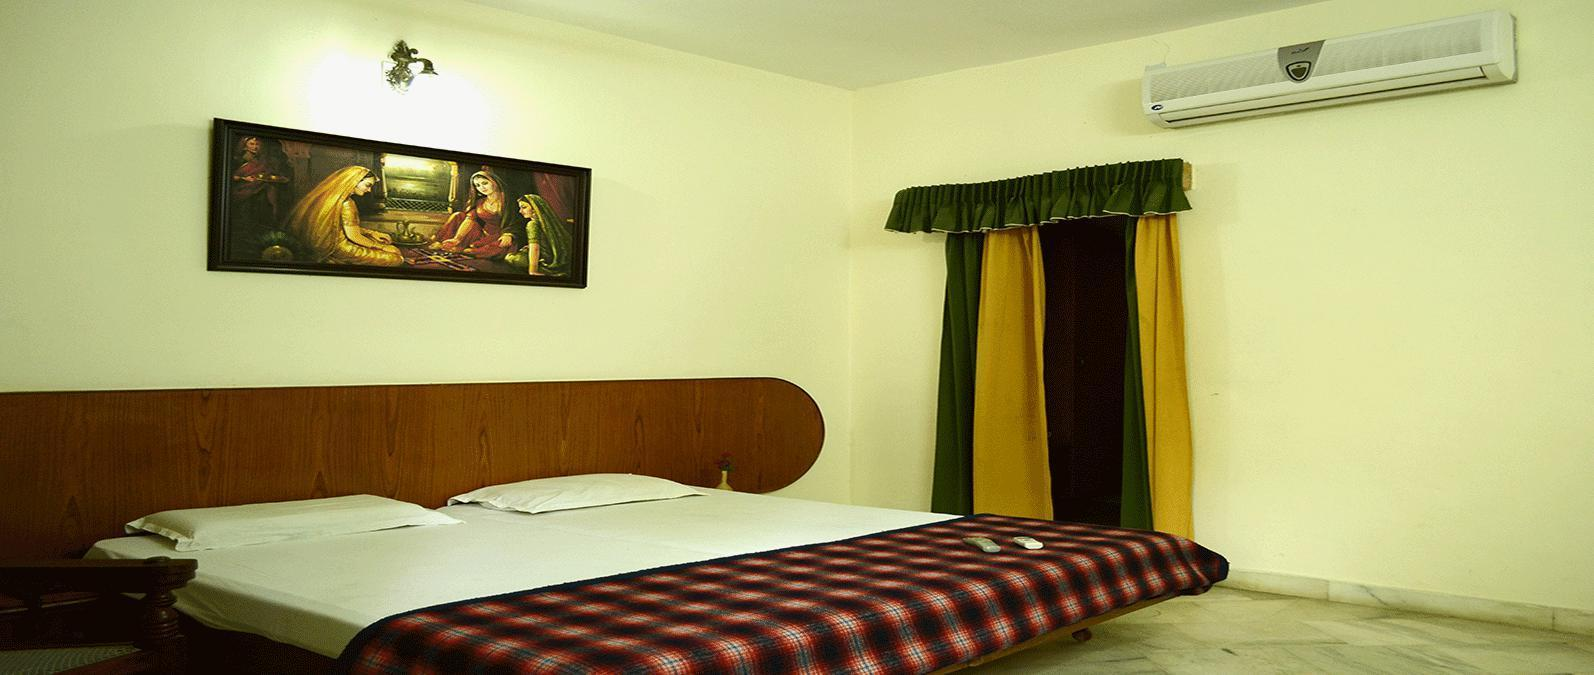 Eco  Friendly Environment With Pure Natural Scenic Beauty.